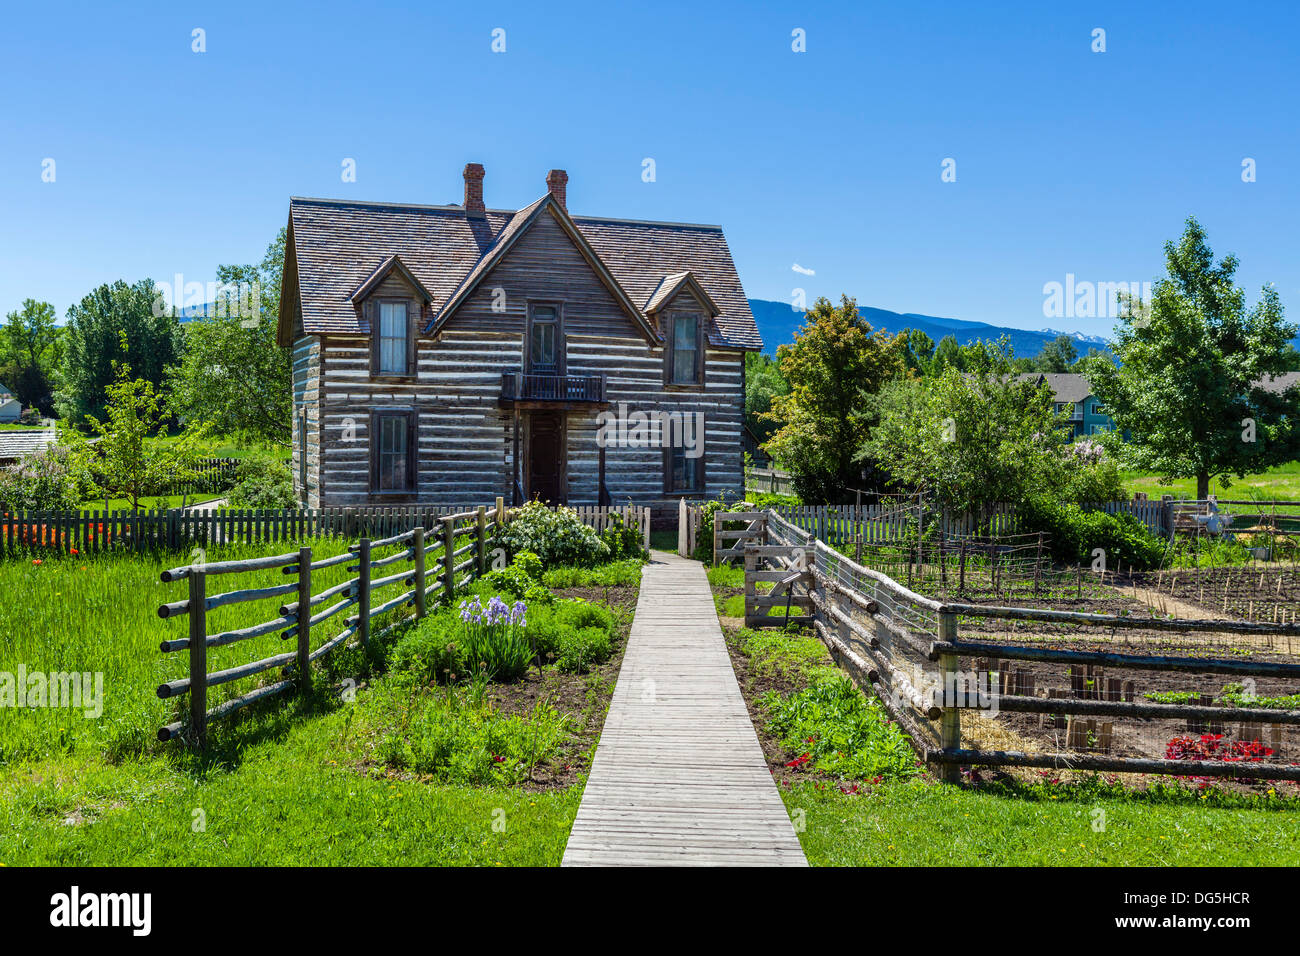 The 19thC Tinsley House homestead, a living history exhibit at the Museum of the Rockies, Bozeman, Montana, USA - Stock Image